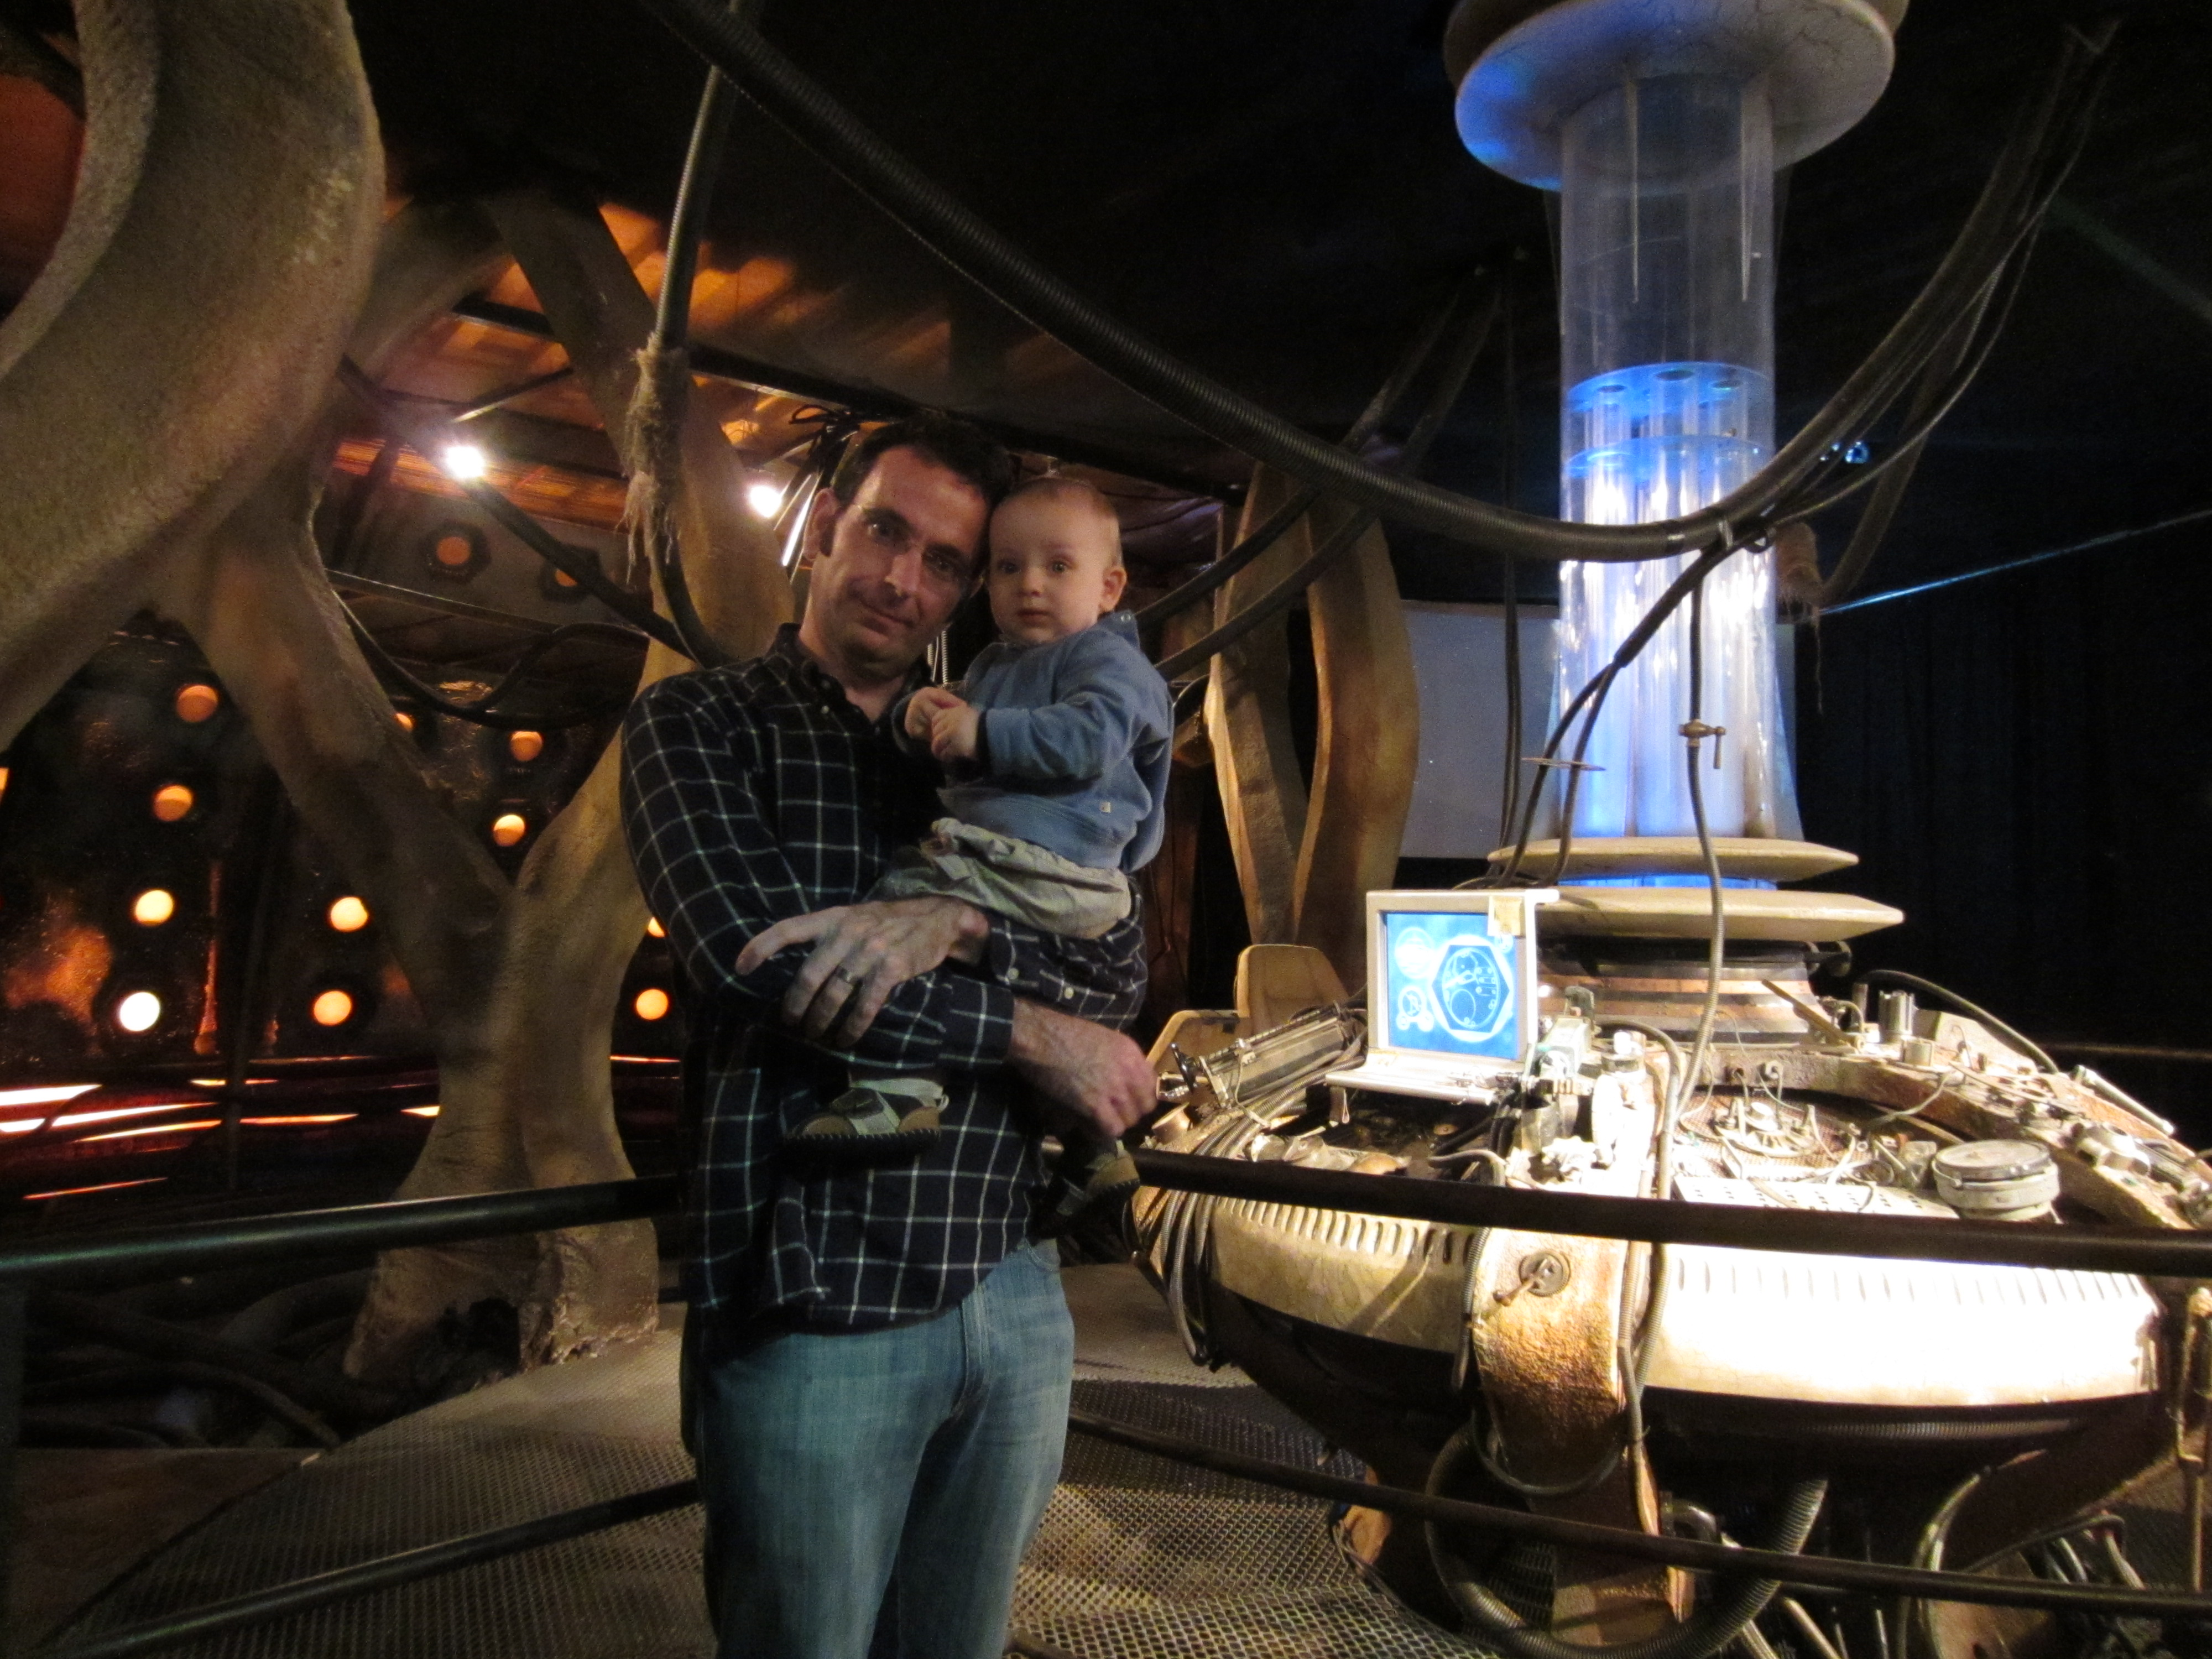 Doctor Who Experience Cardiff, Geeked Out in Cardiff: The Doctor Who Experience Family Travel Tips